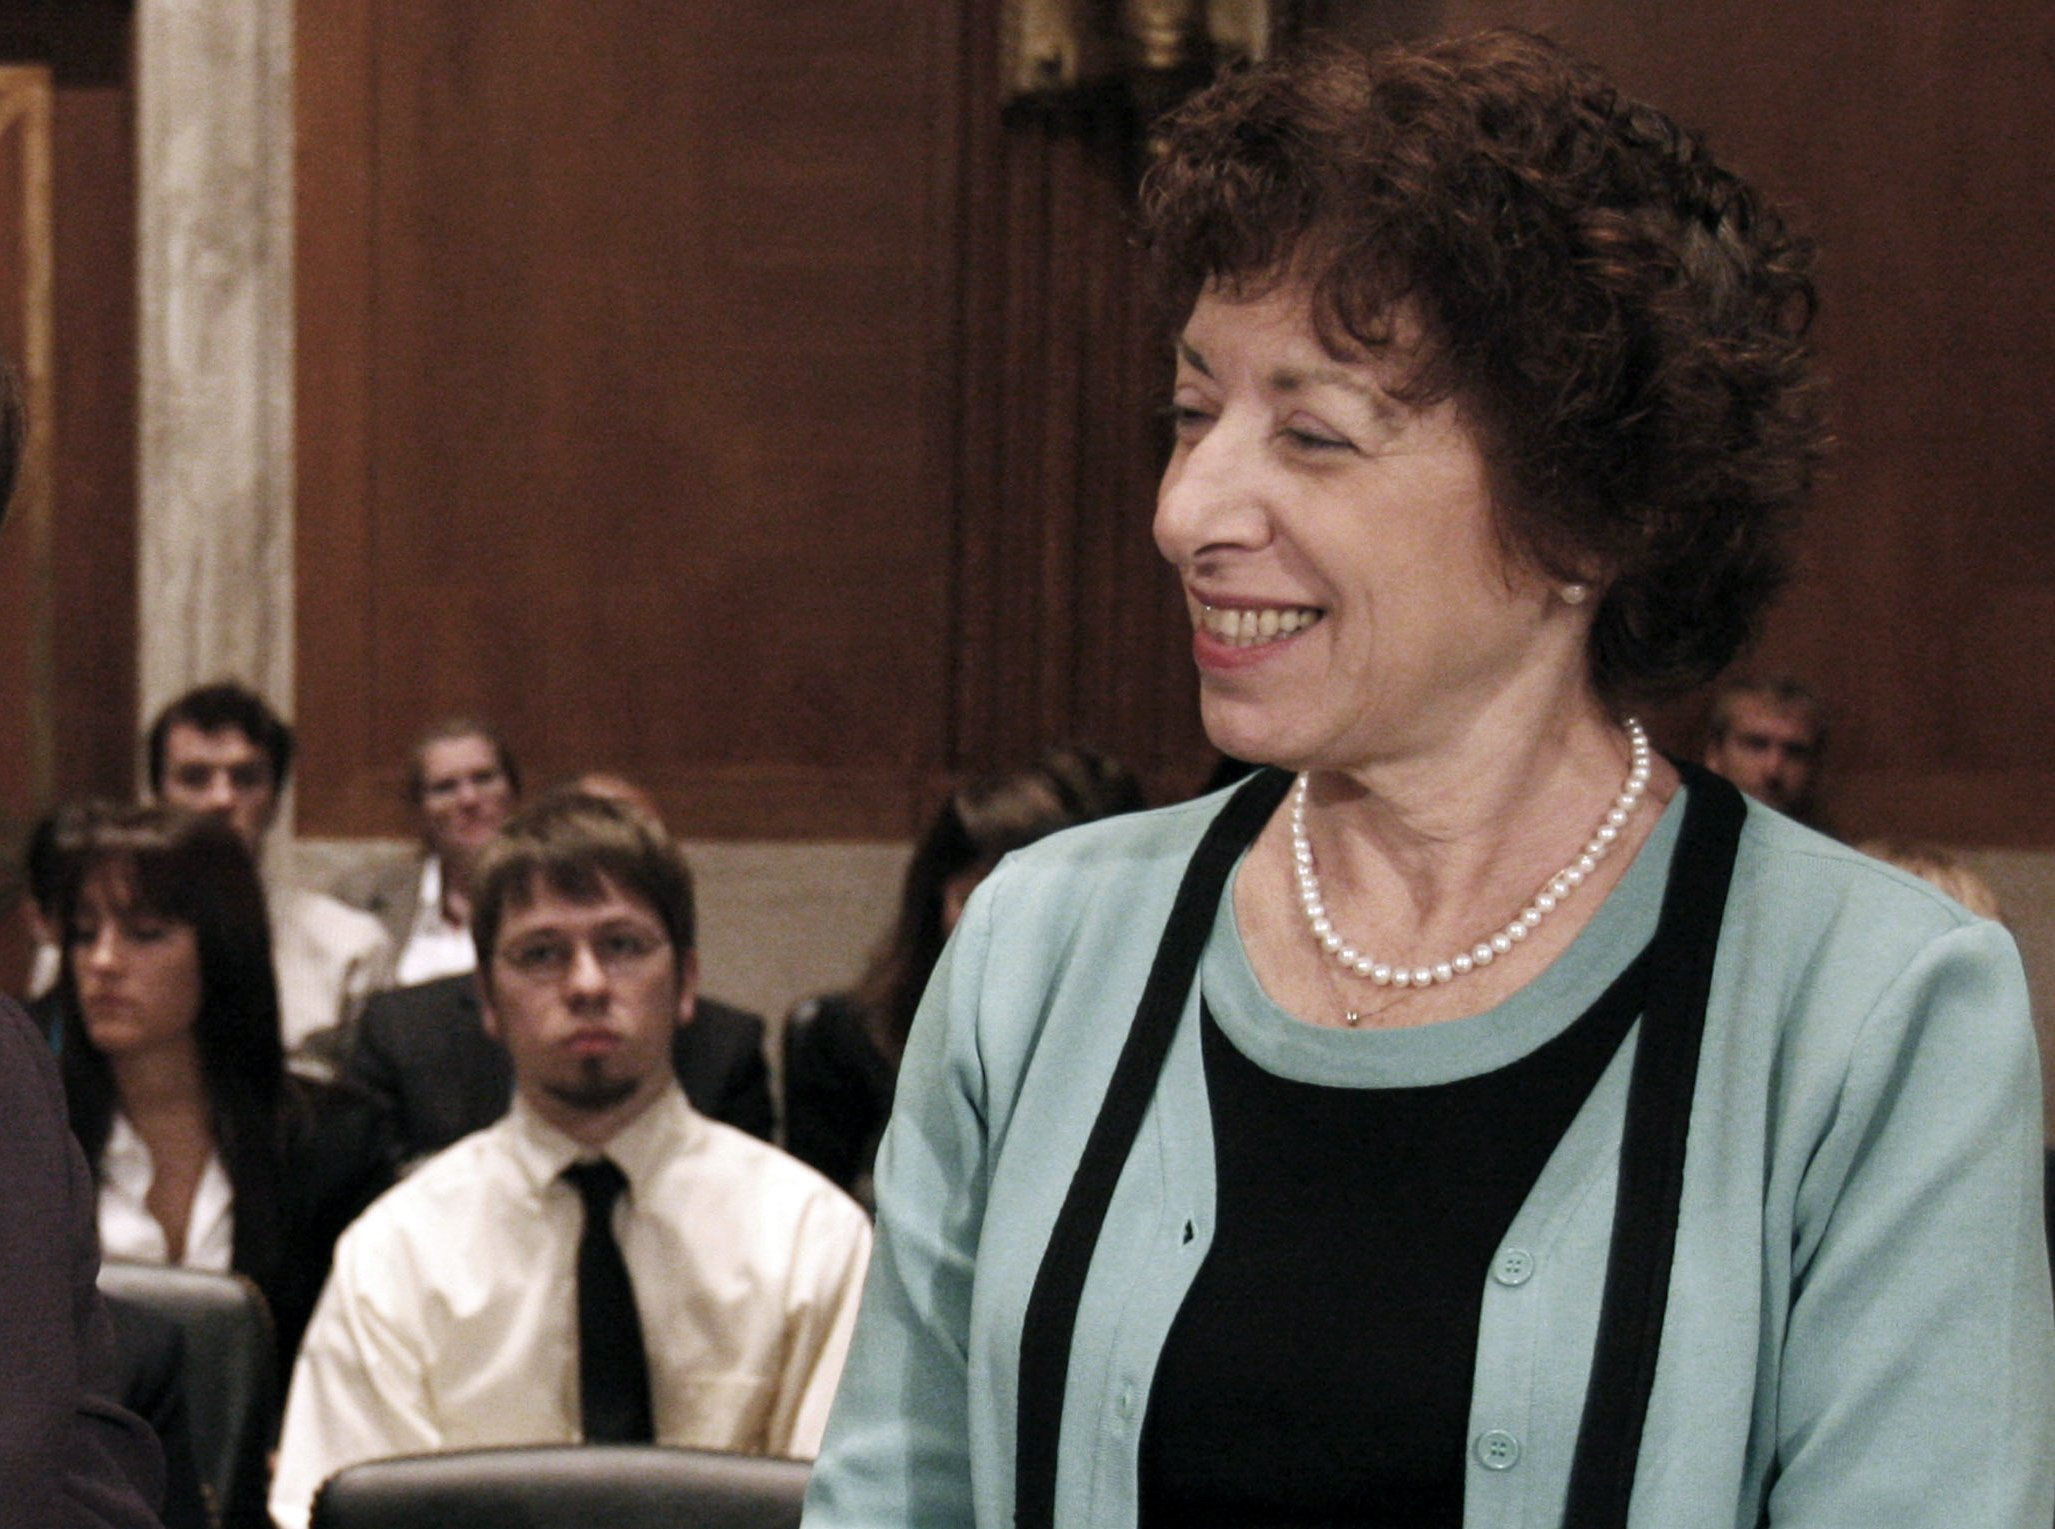 Ex-government health chief joins warnings about EPA proposal